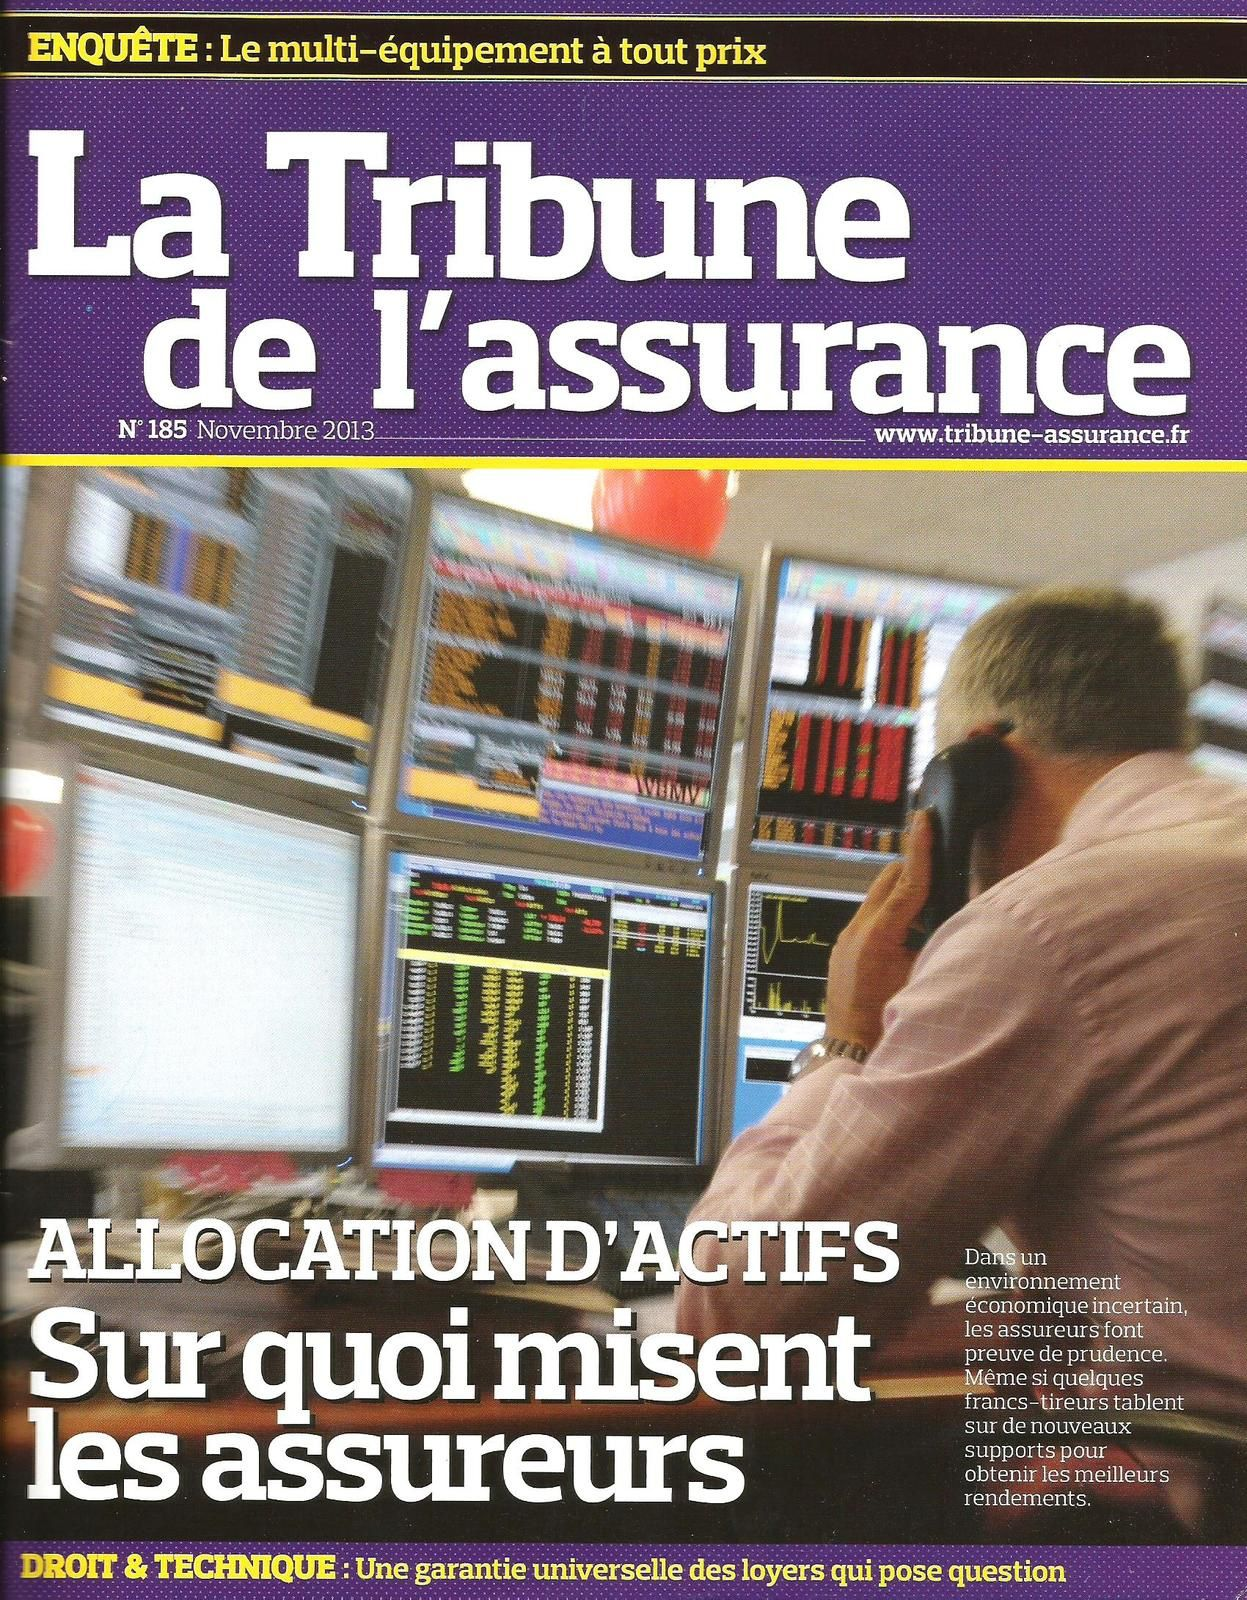 si on parlait management LA TRIBUNE DE L'ASSURANCE article par Charles Brillet